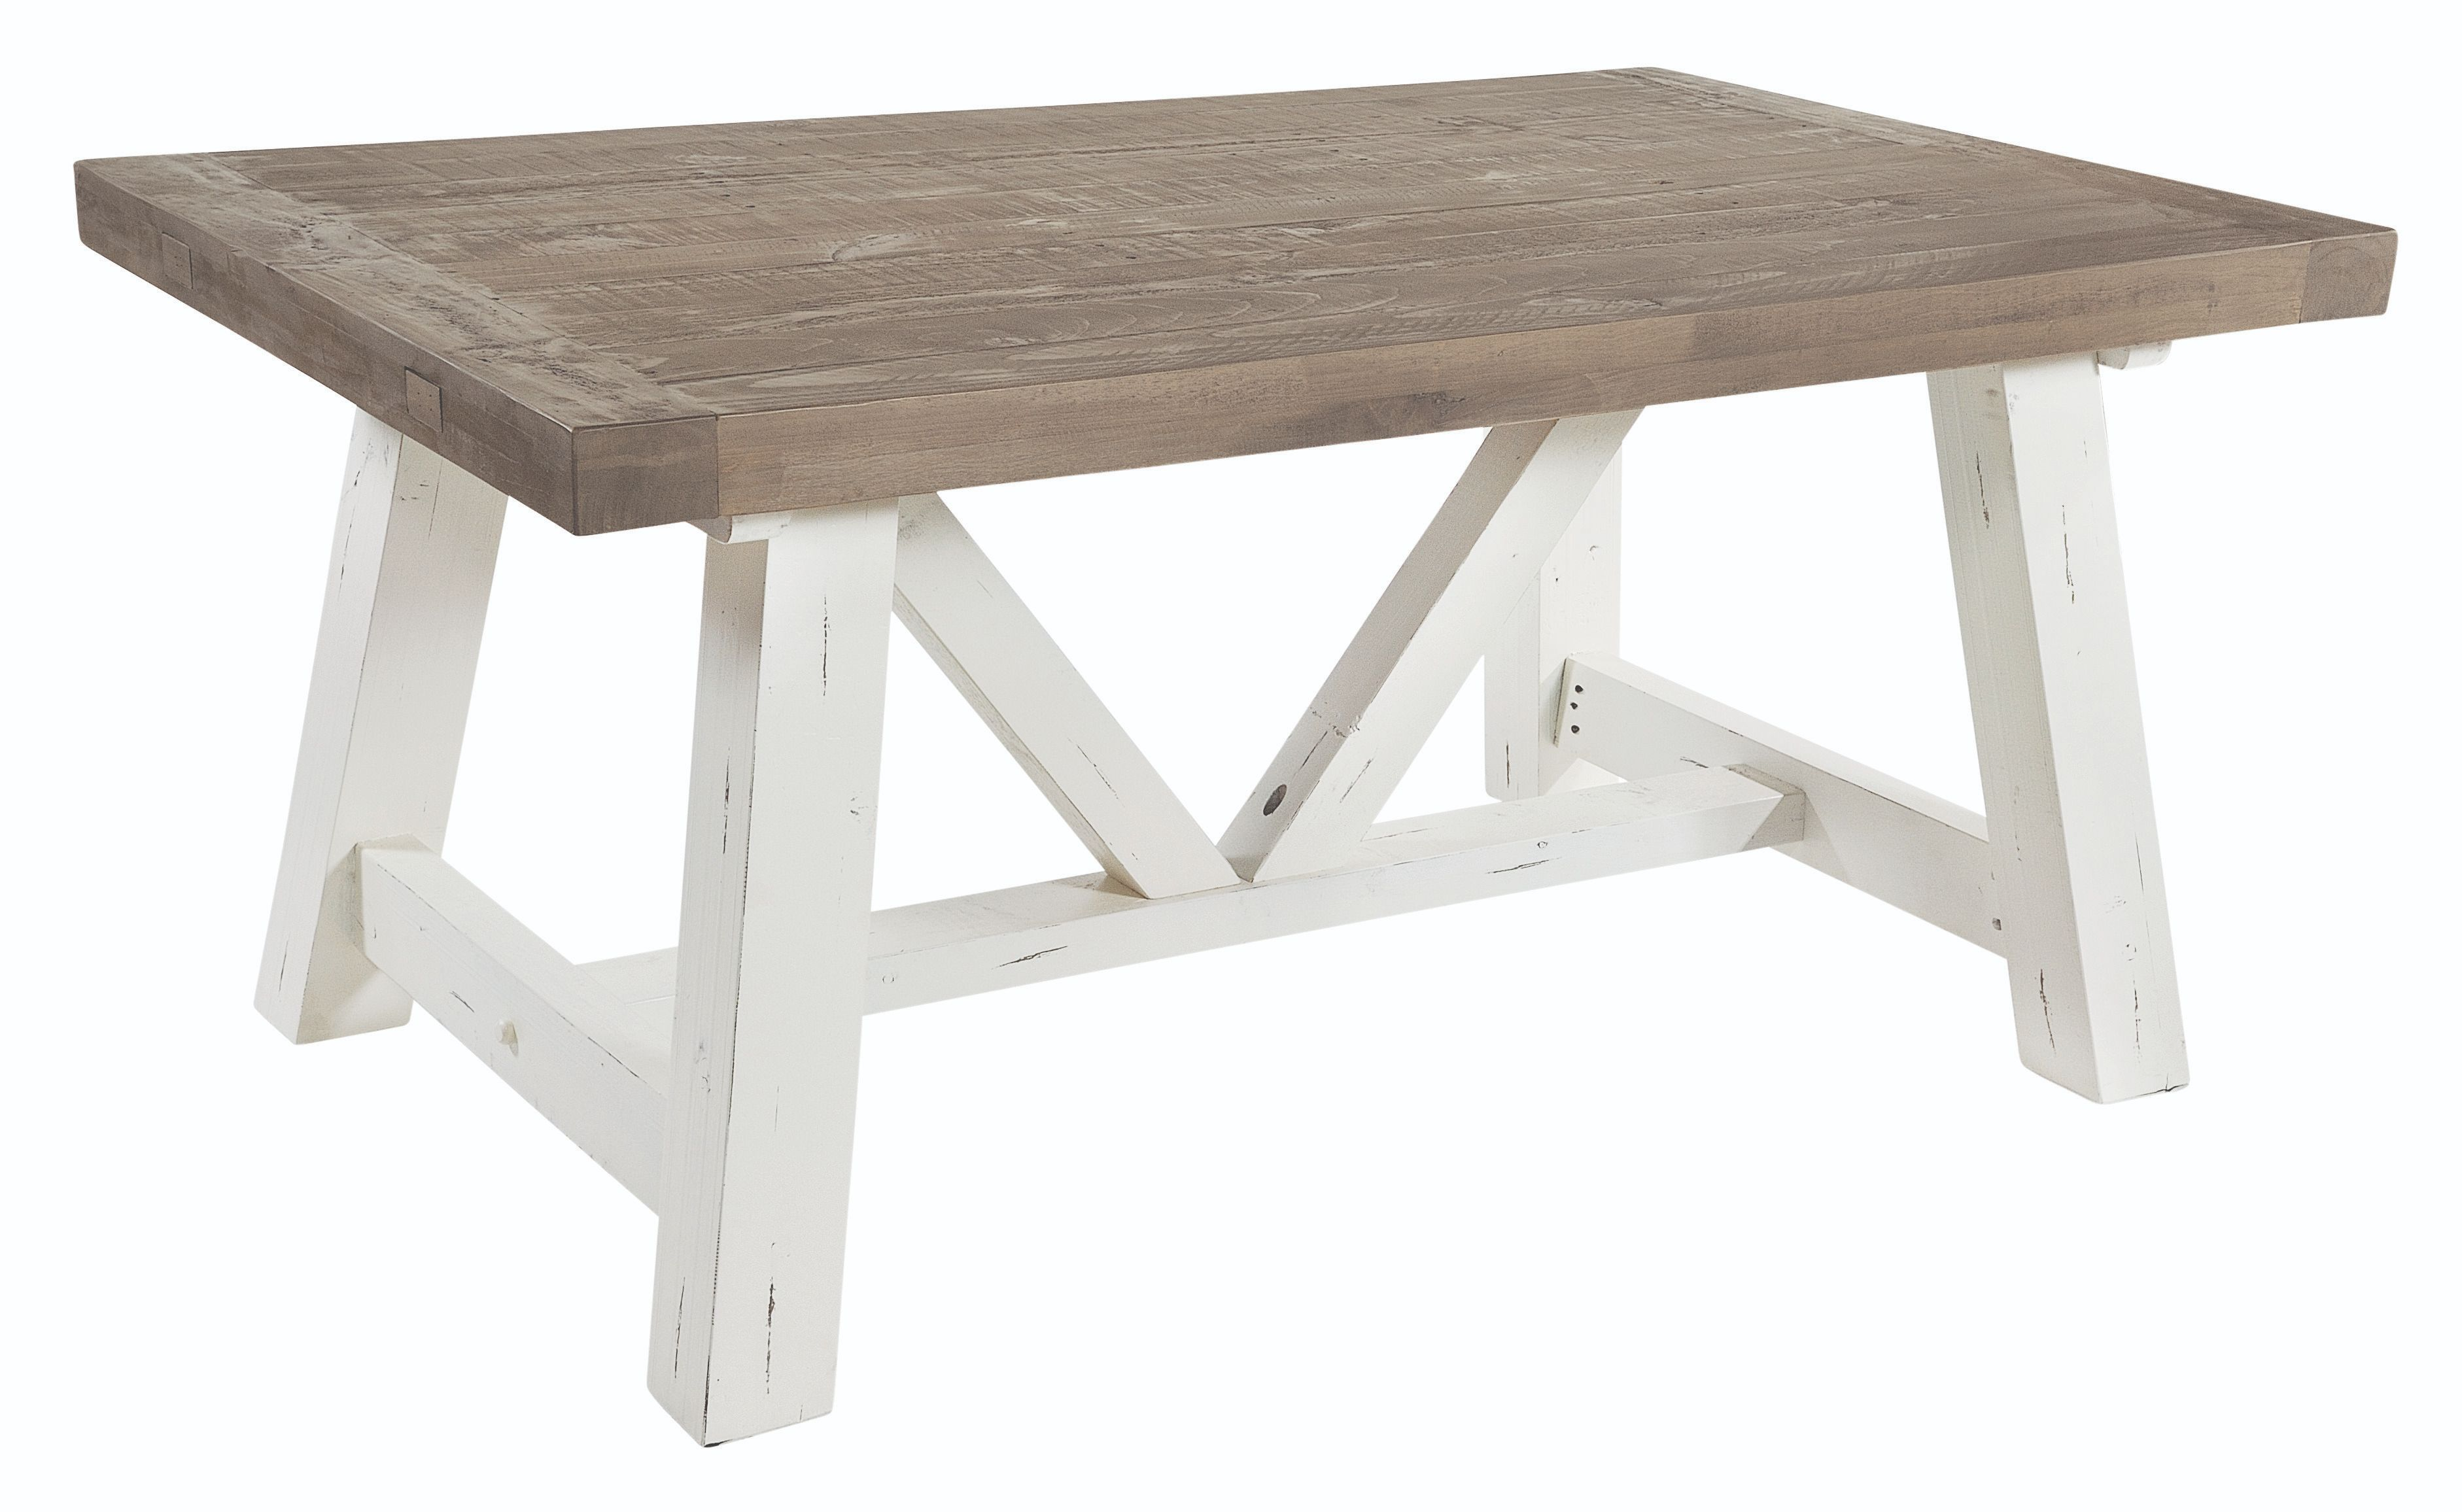 PURBECK 160 EXTENDING TABLE Distressed Paint & Driftwood